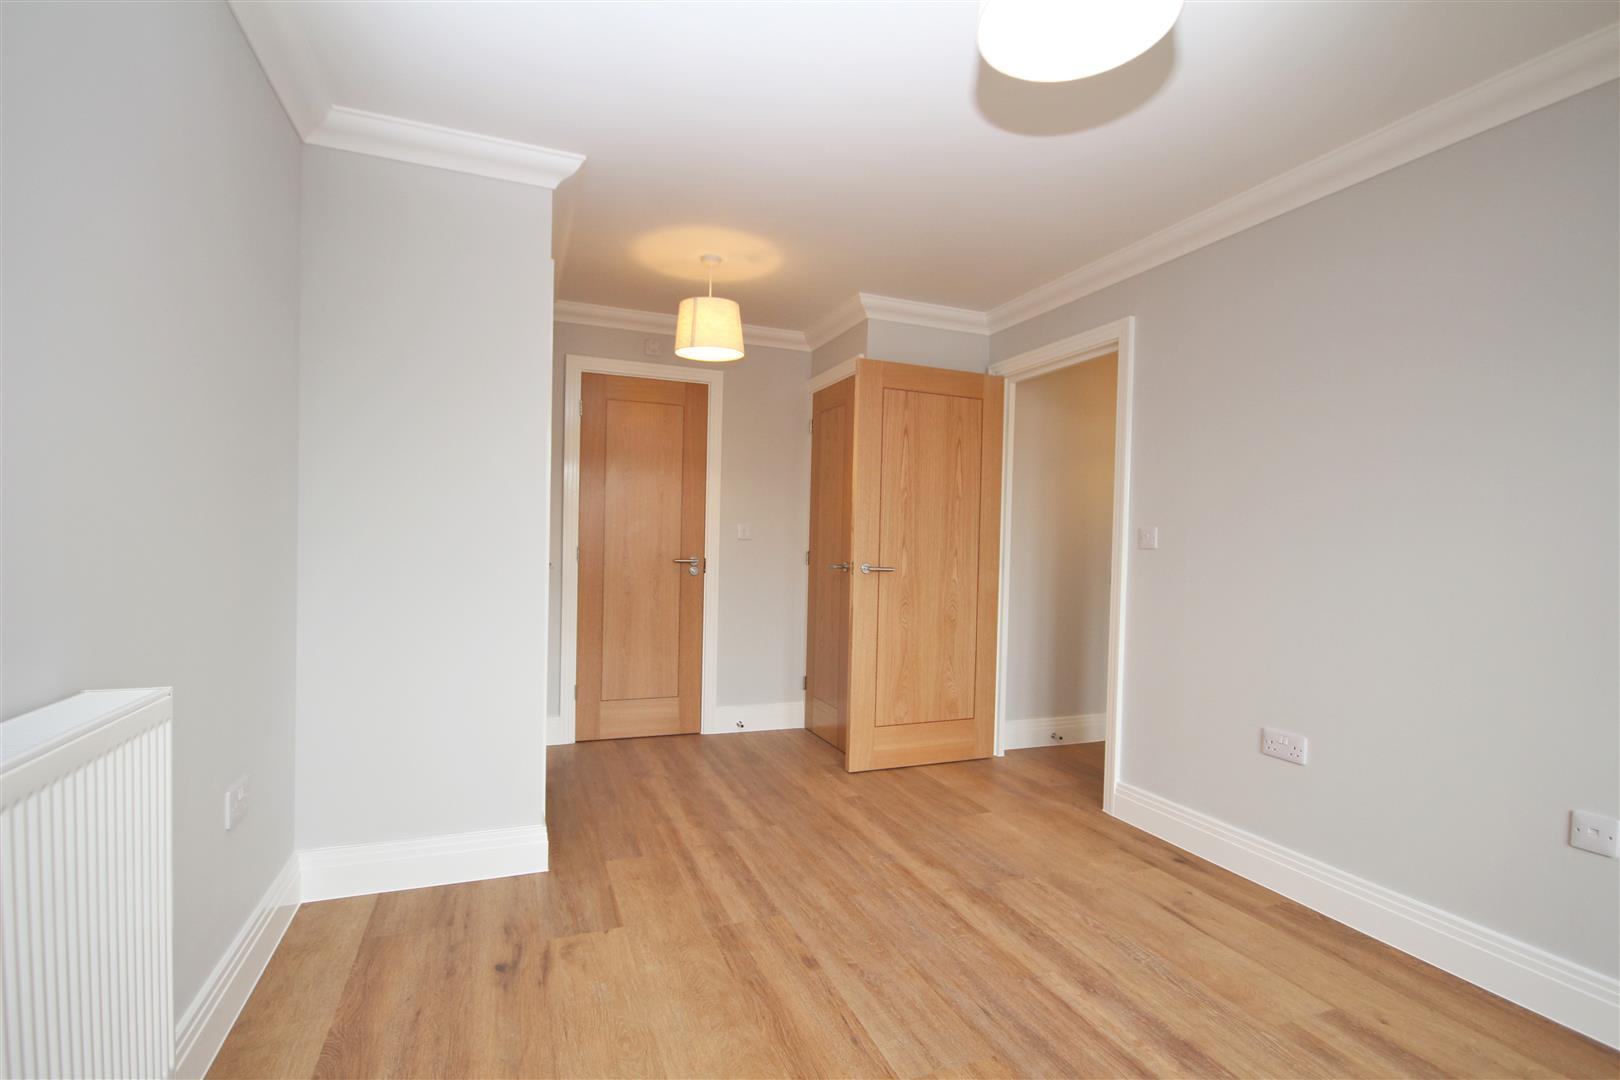 2 bed Flat to rent - (Property Image 8)